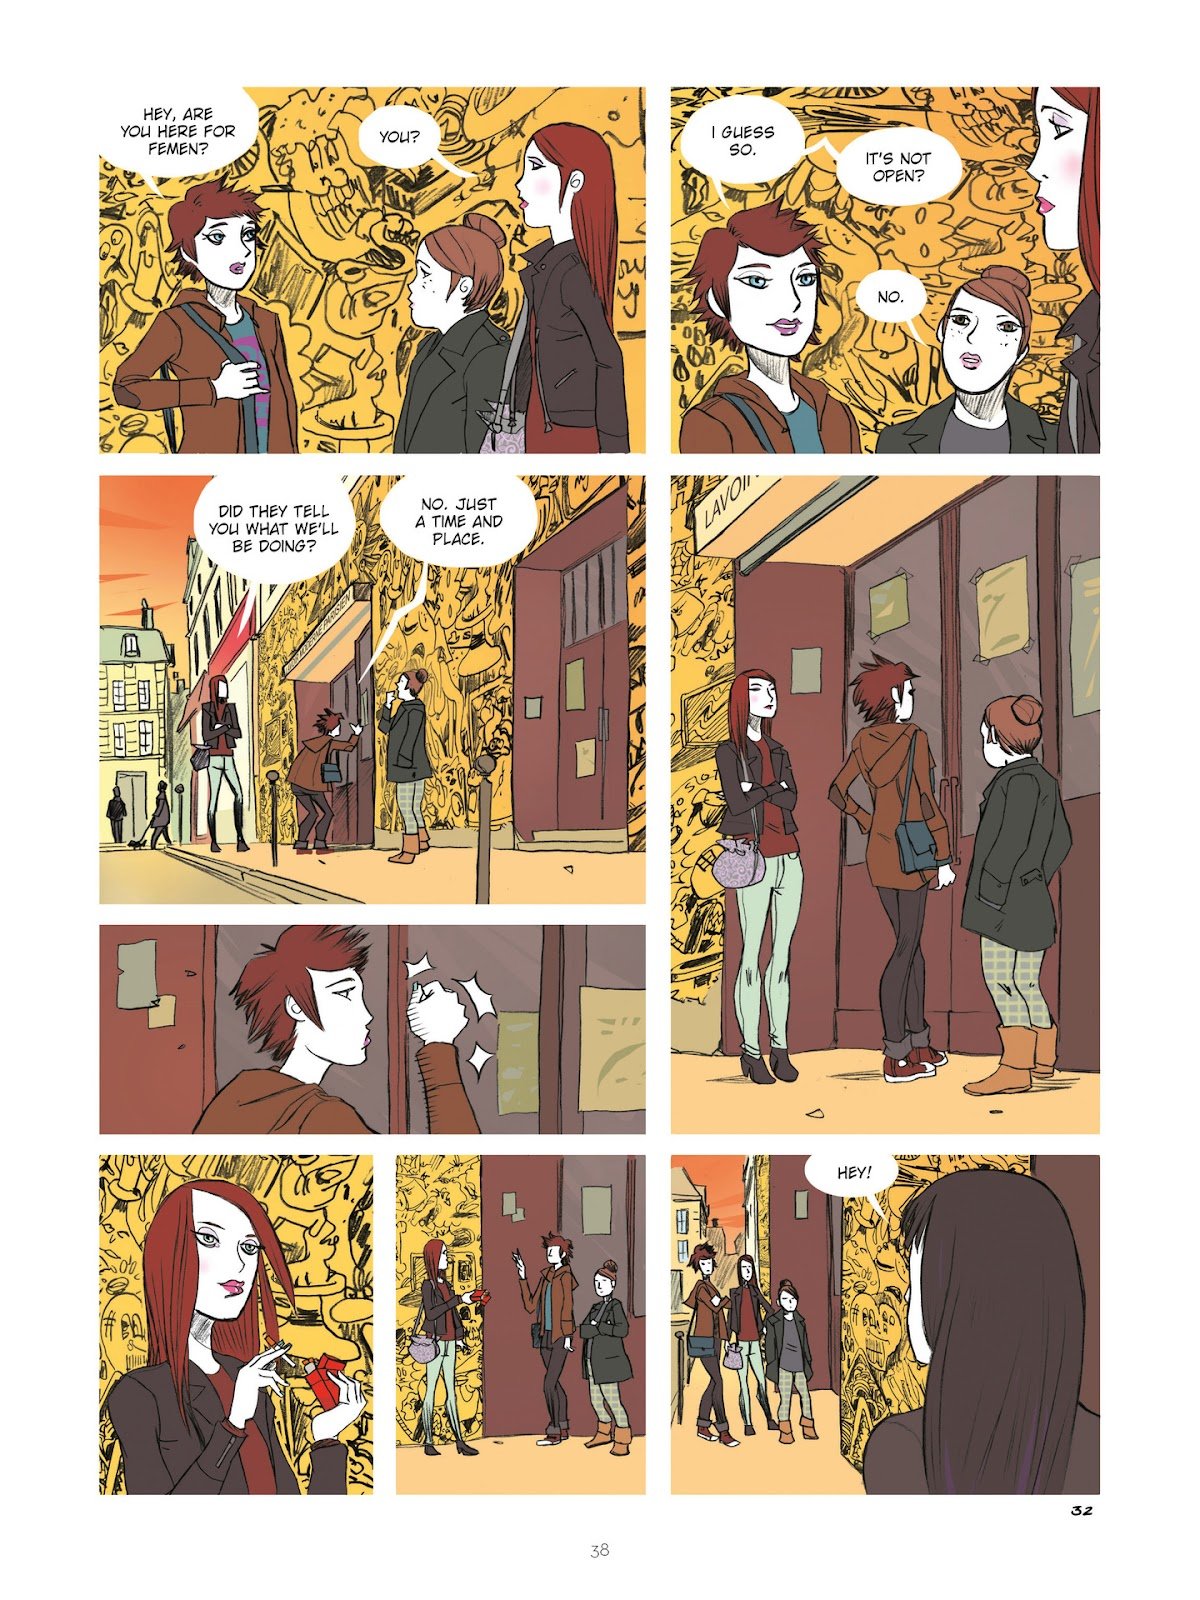 Read online Diary of A Femen comic -  Issue # TPB - 40